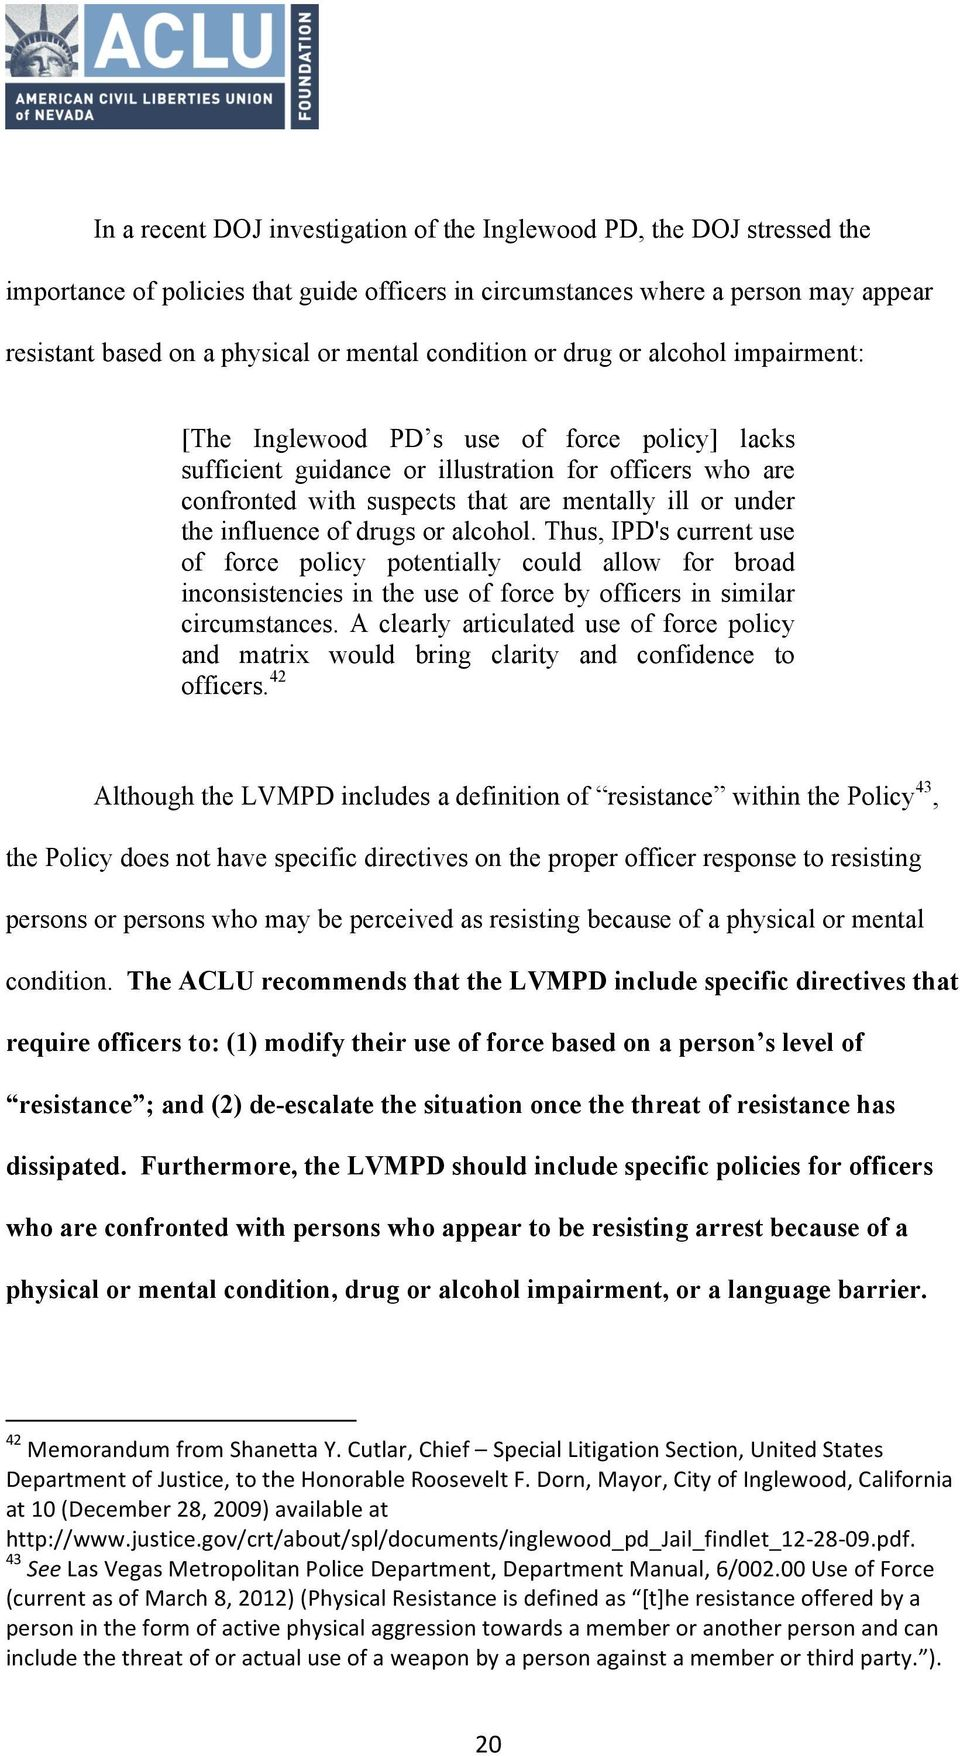 under the influence of drugs or alcohol. Thus, IPD's current use of force policy potentially could allow for broad inconsistencies in the use of force by officers in similar circumstances.